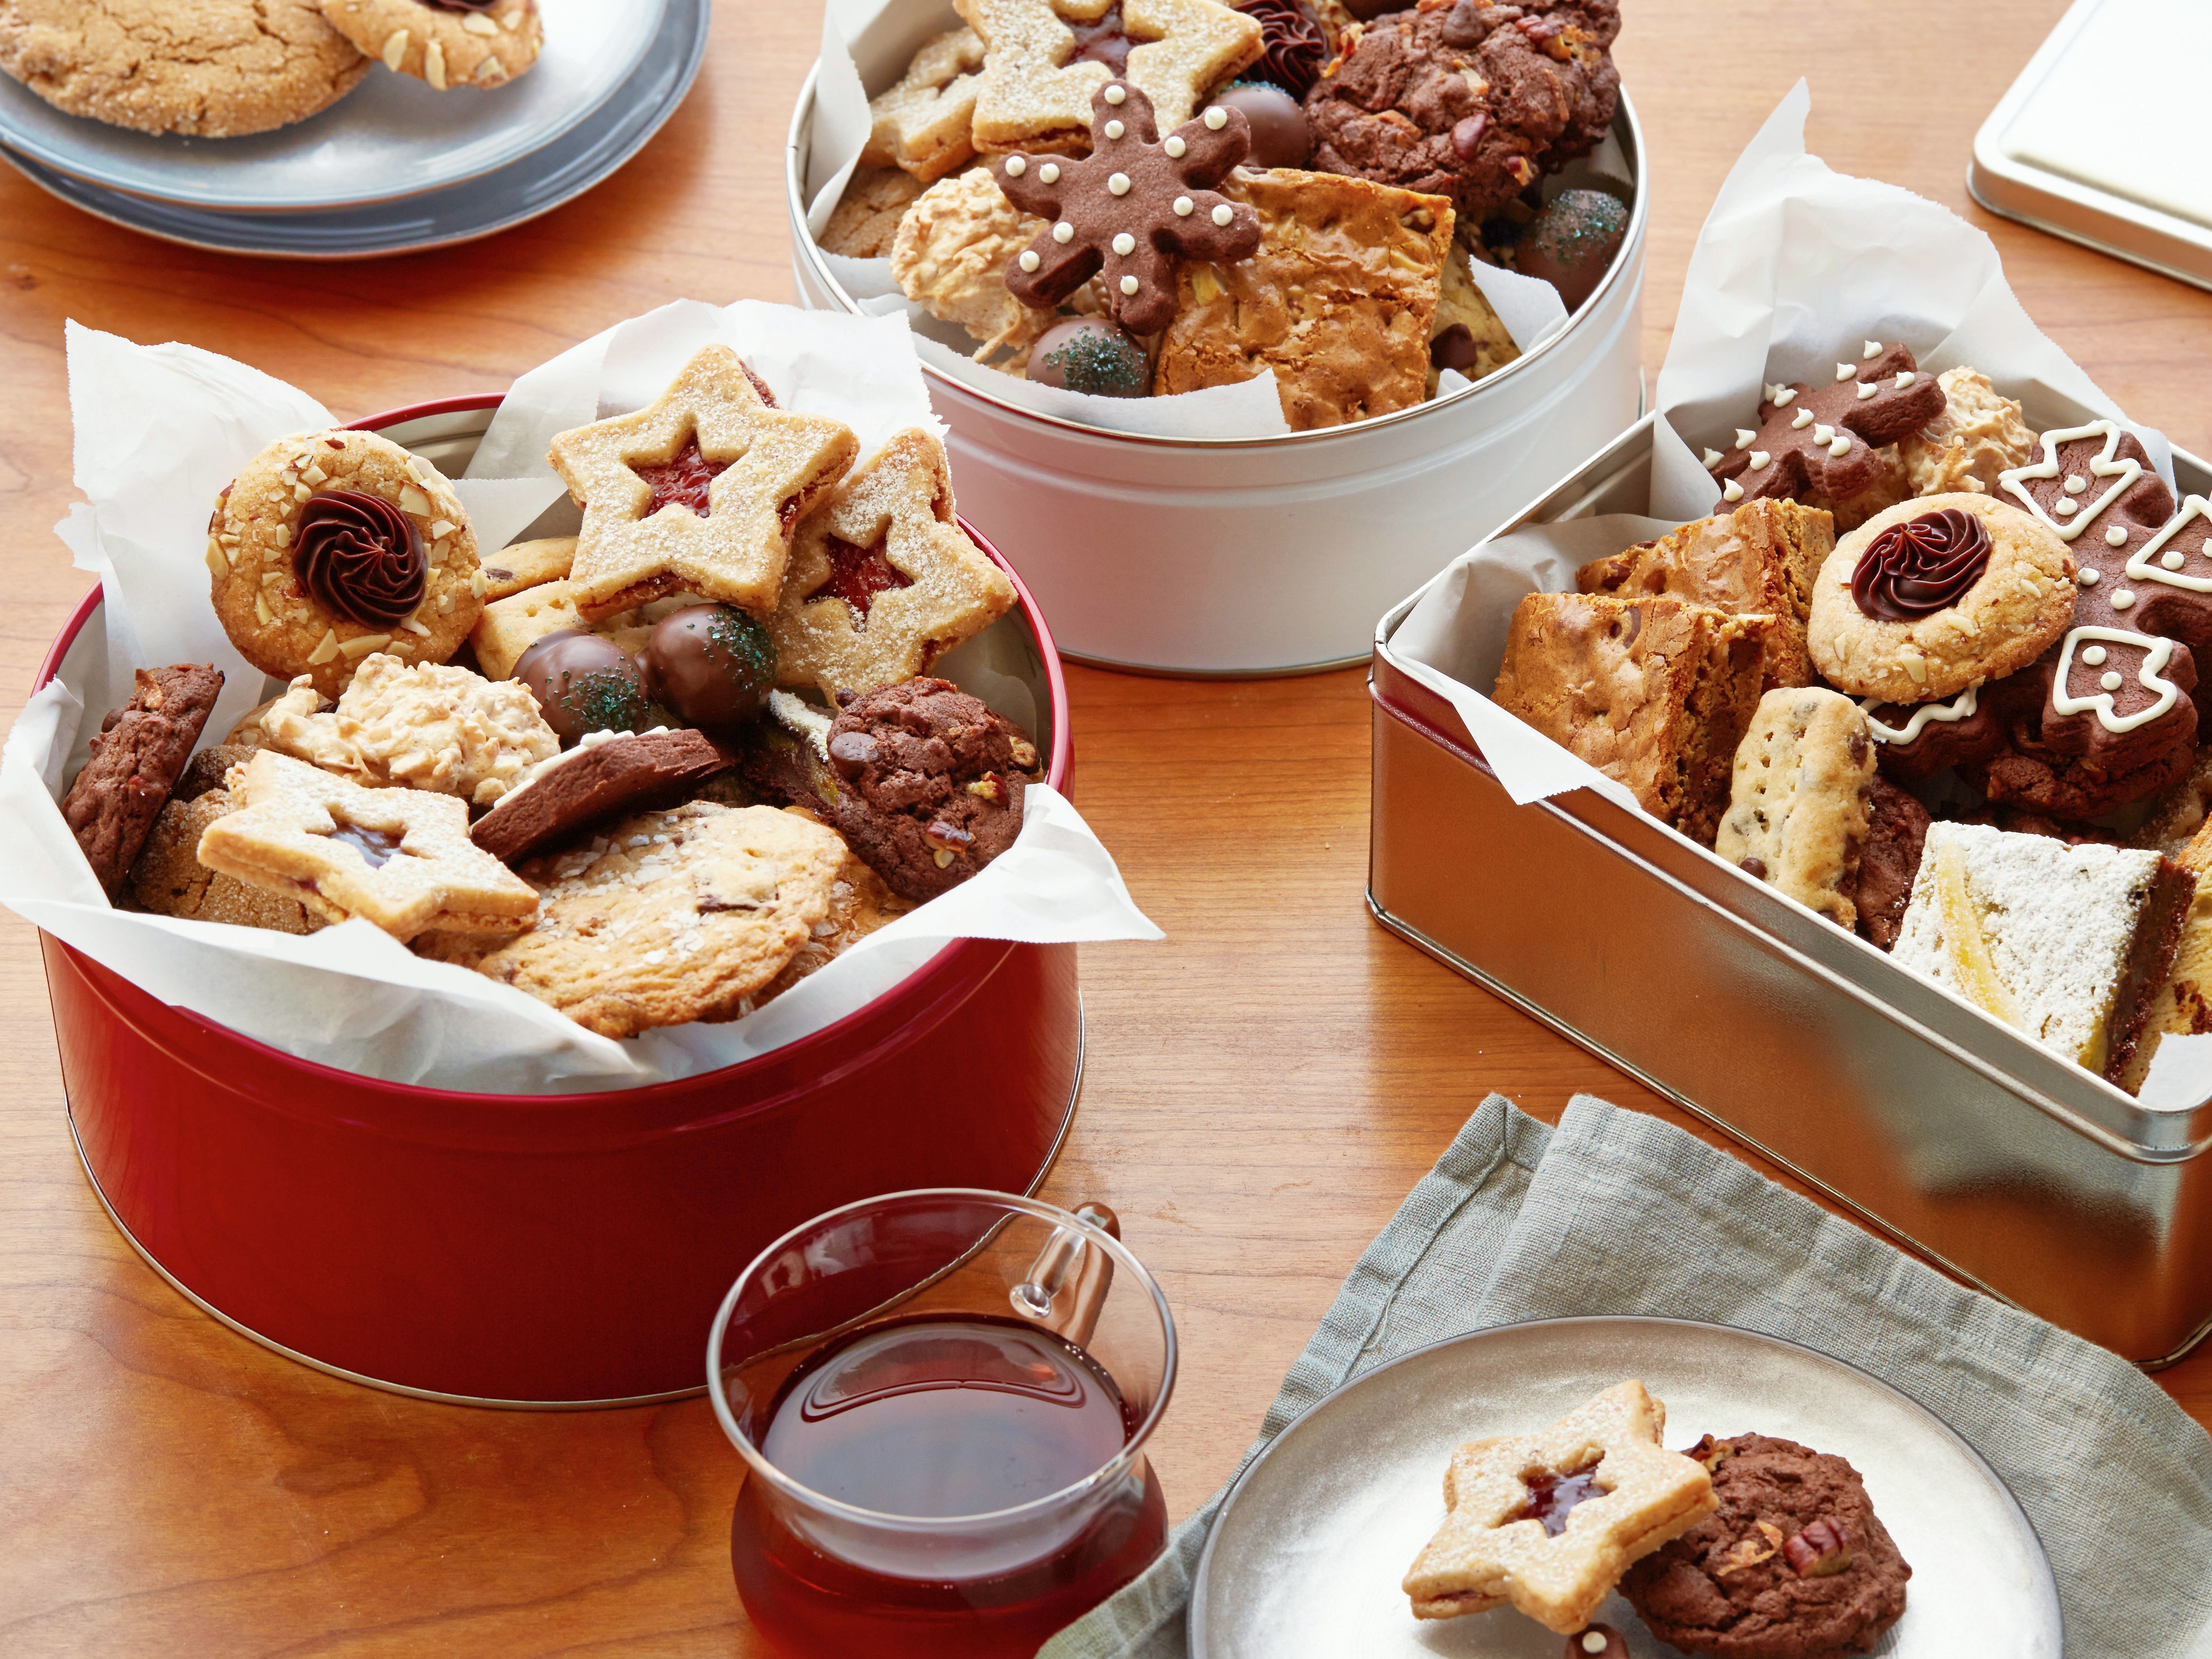 12 days of cookies recipes recipes and cooking food network 12 days of cookies recipes recipes and cooking food network foodnetwork cookies pinterest cookie recipes recipe recipe and ina garten forumfinder Gallery